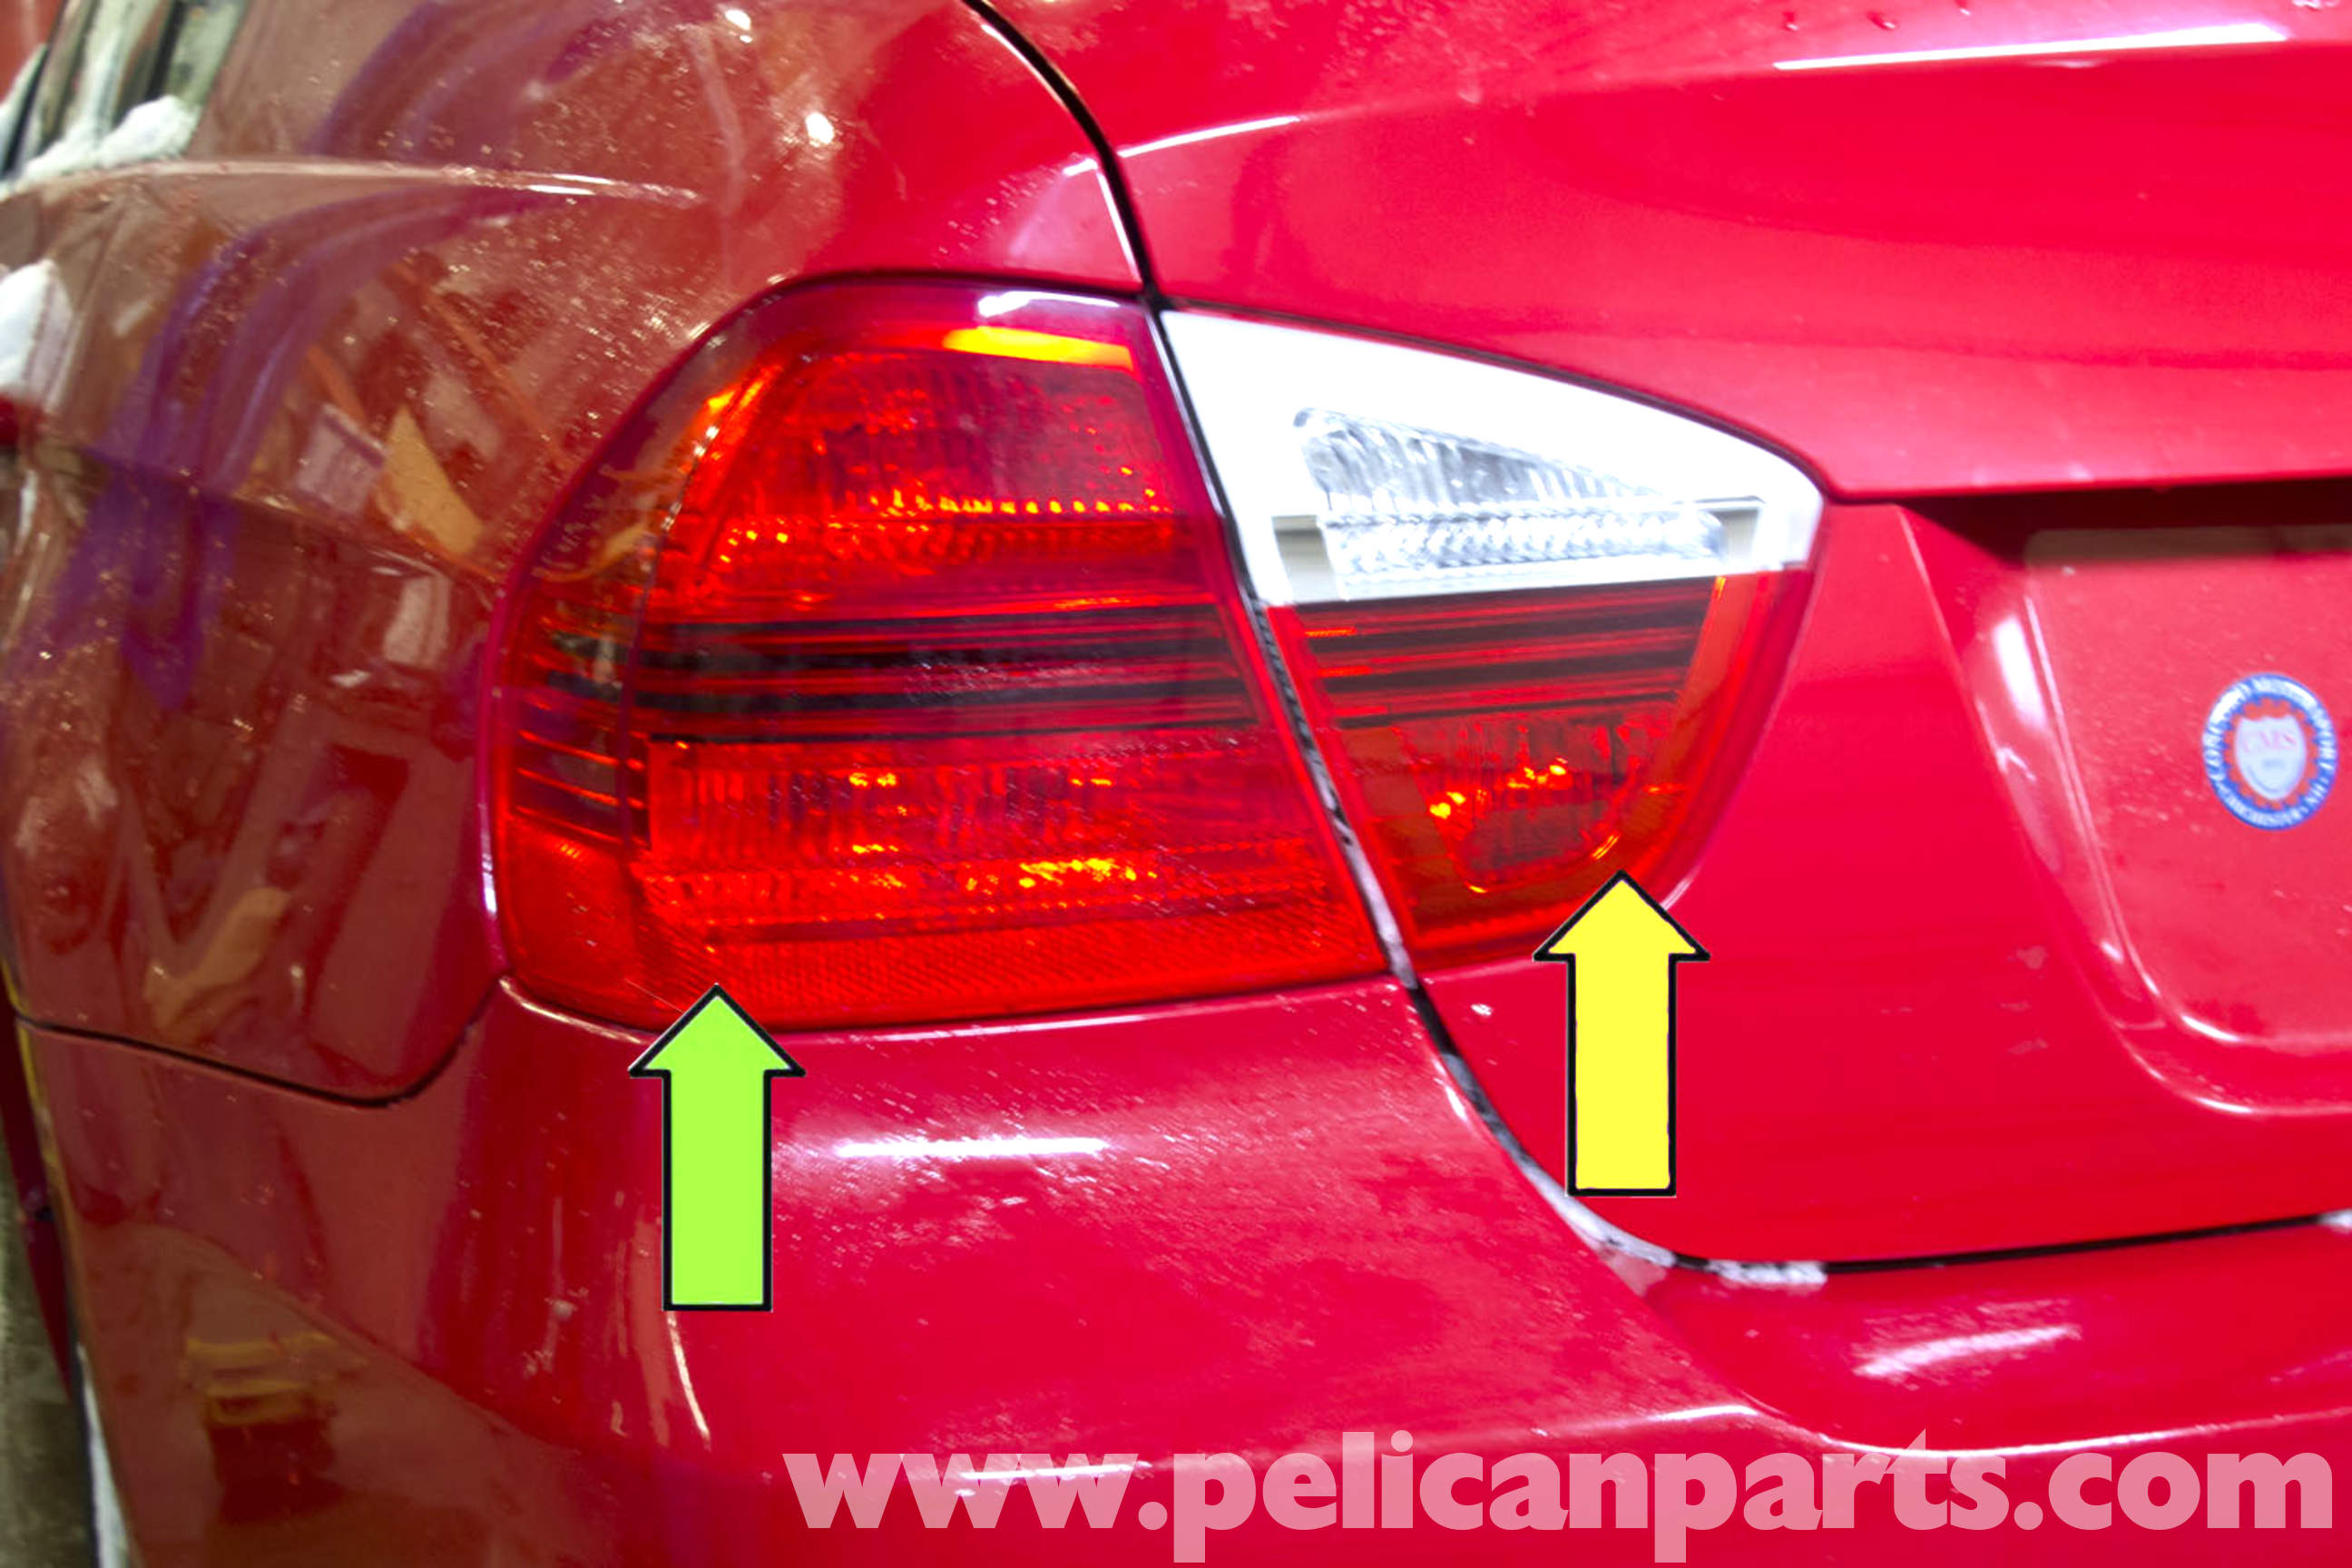 bmw e90 rear light replacement e91 e92 e93 pelican parts diy